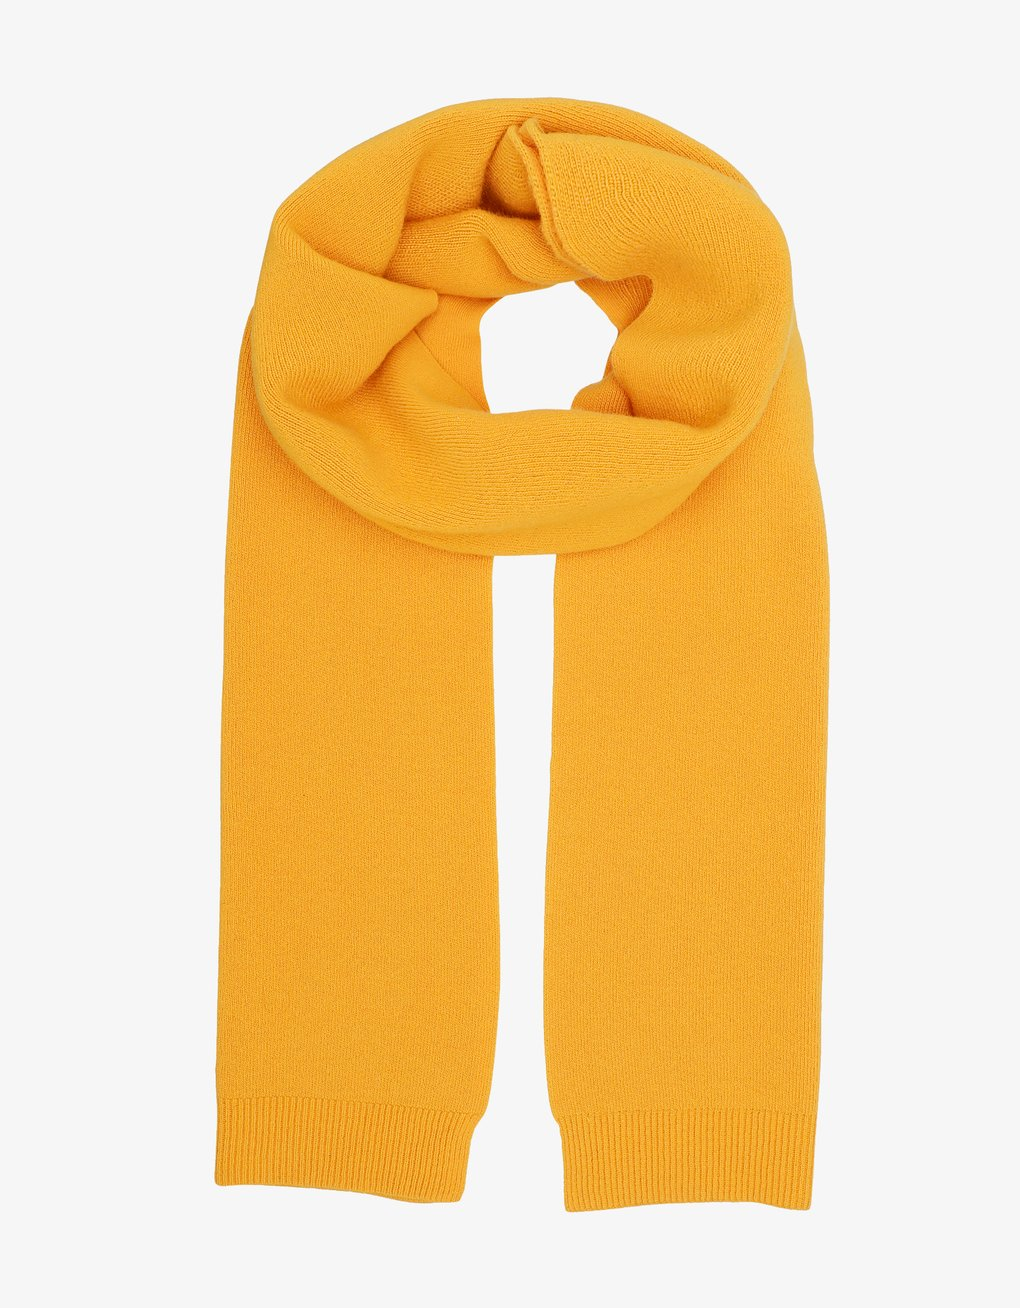 COLORFUL STANDARD | Merino wool scarf | Burnt Yellow - LONDØNWORKS